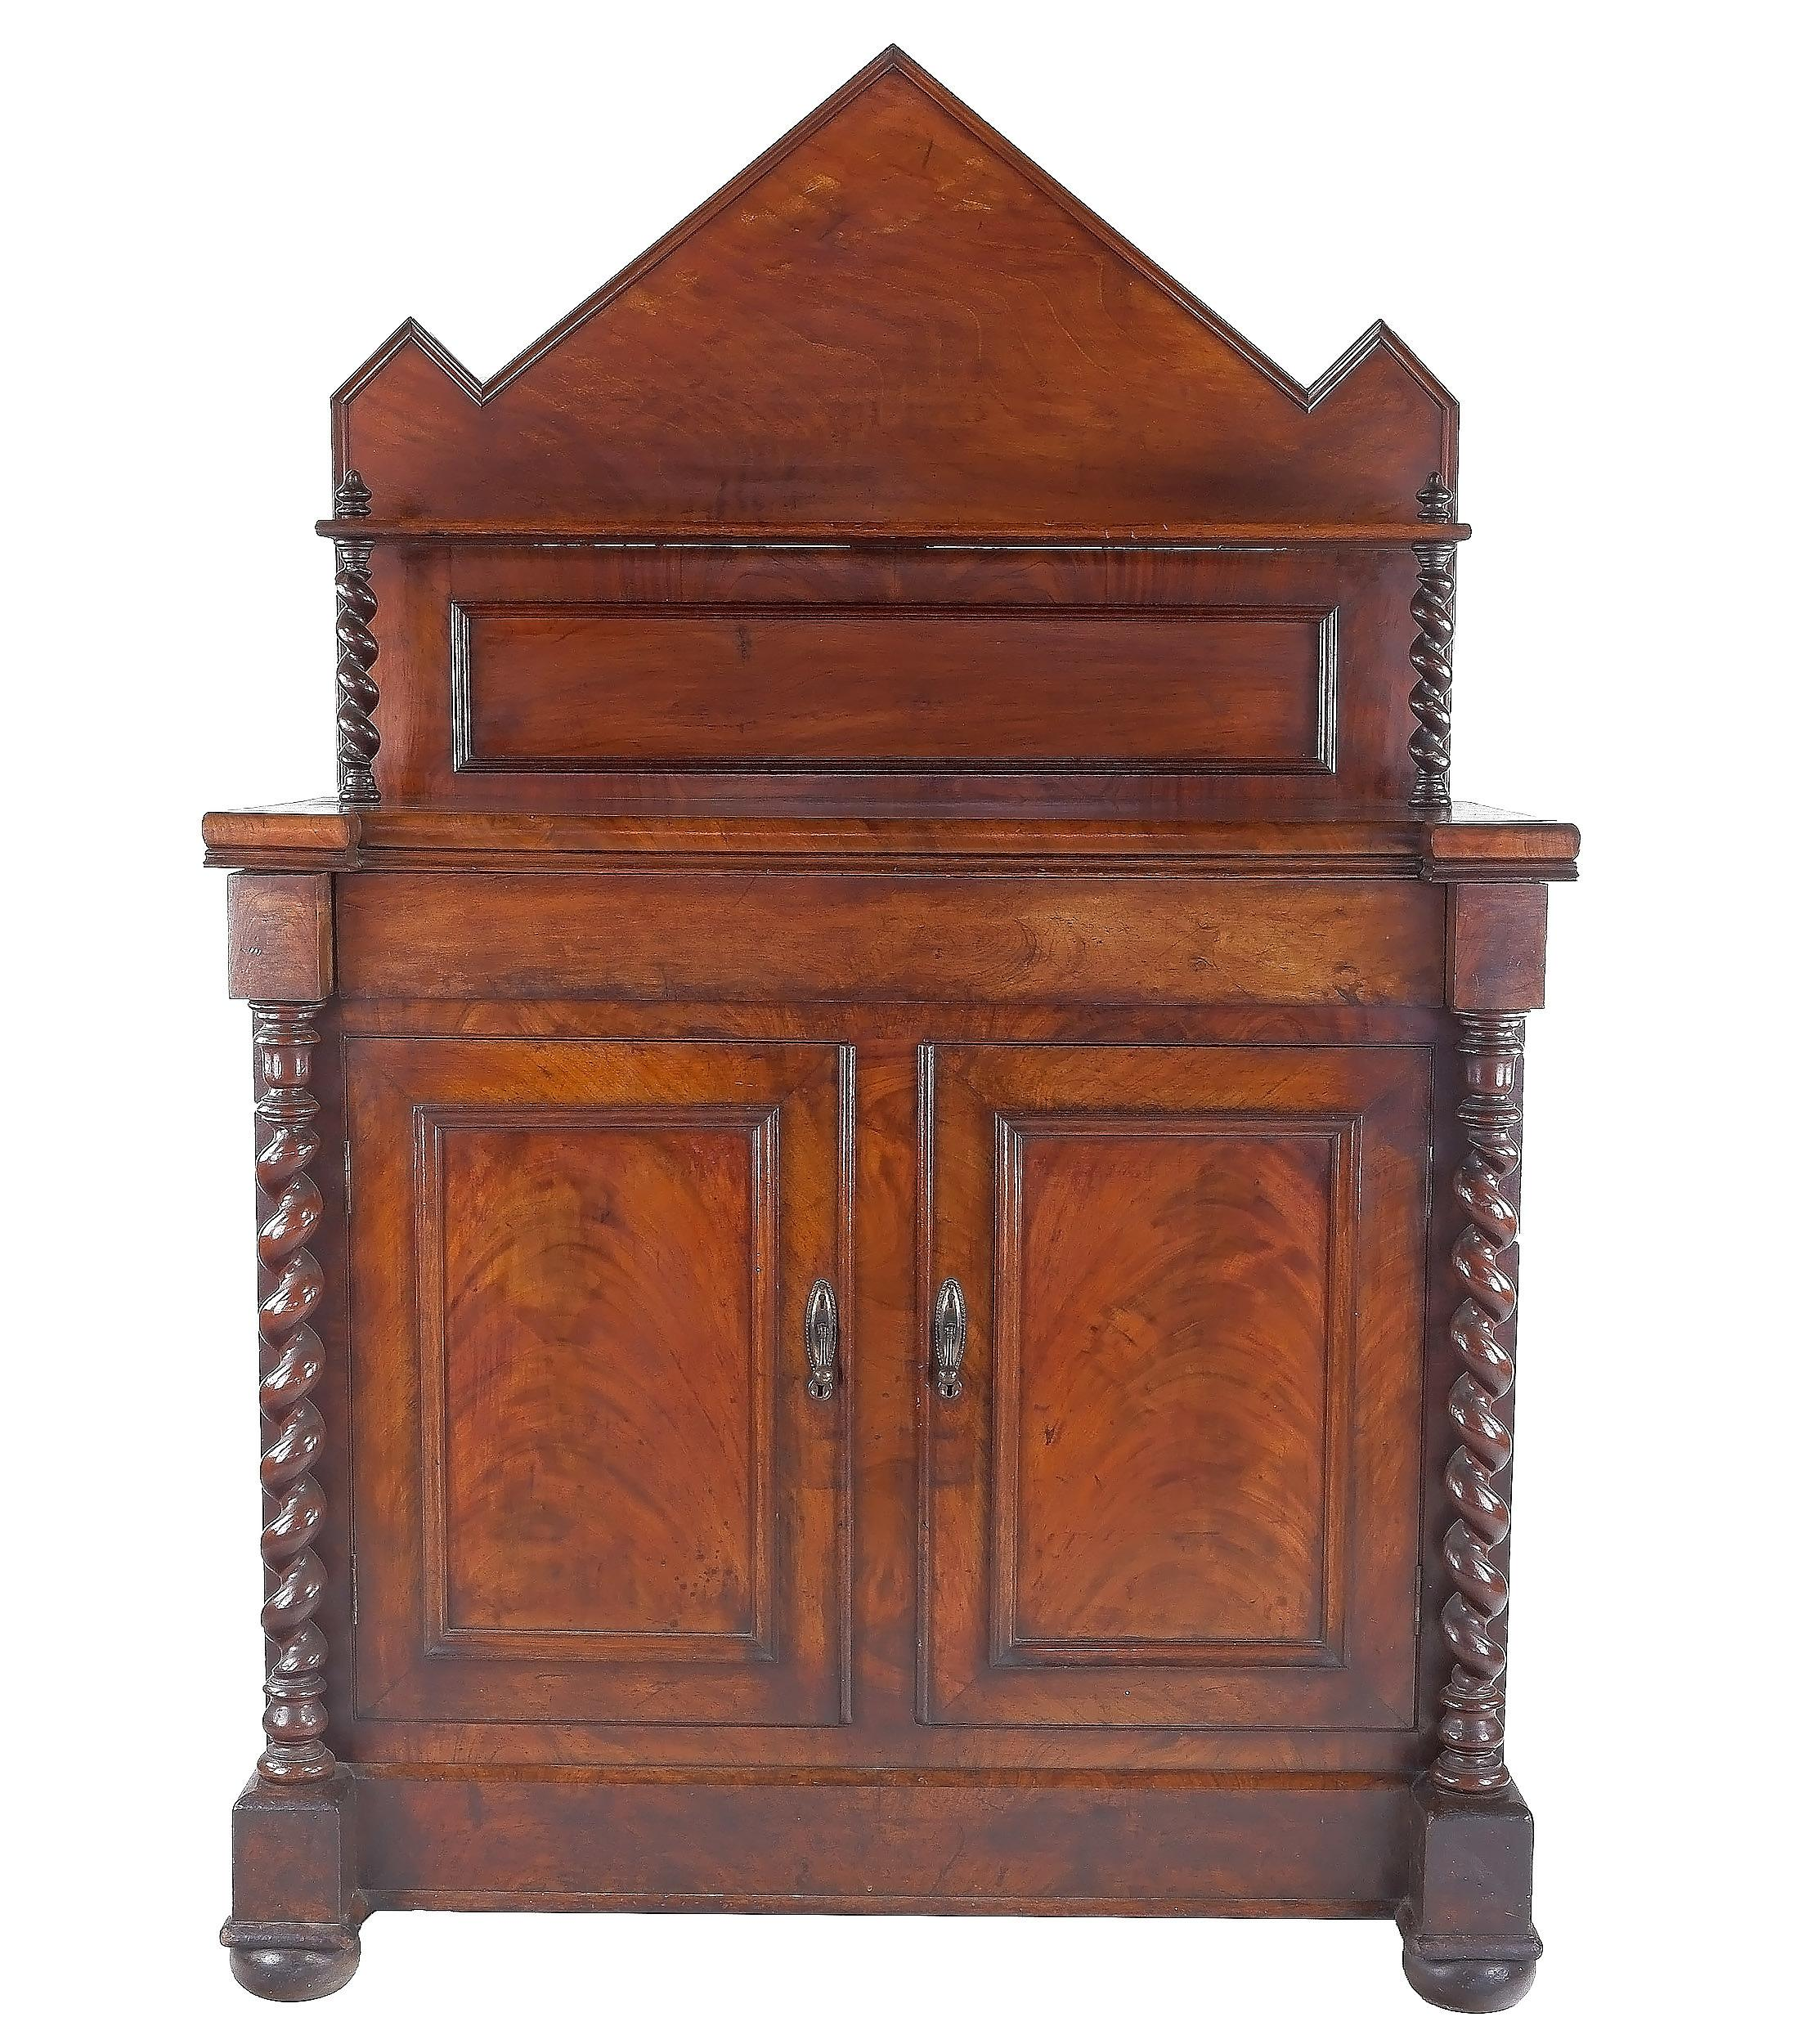 'Australian Cedar Chiffonier with Barley Twist Columns and Palladian Back, 4th Quarter of the 19th Century'